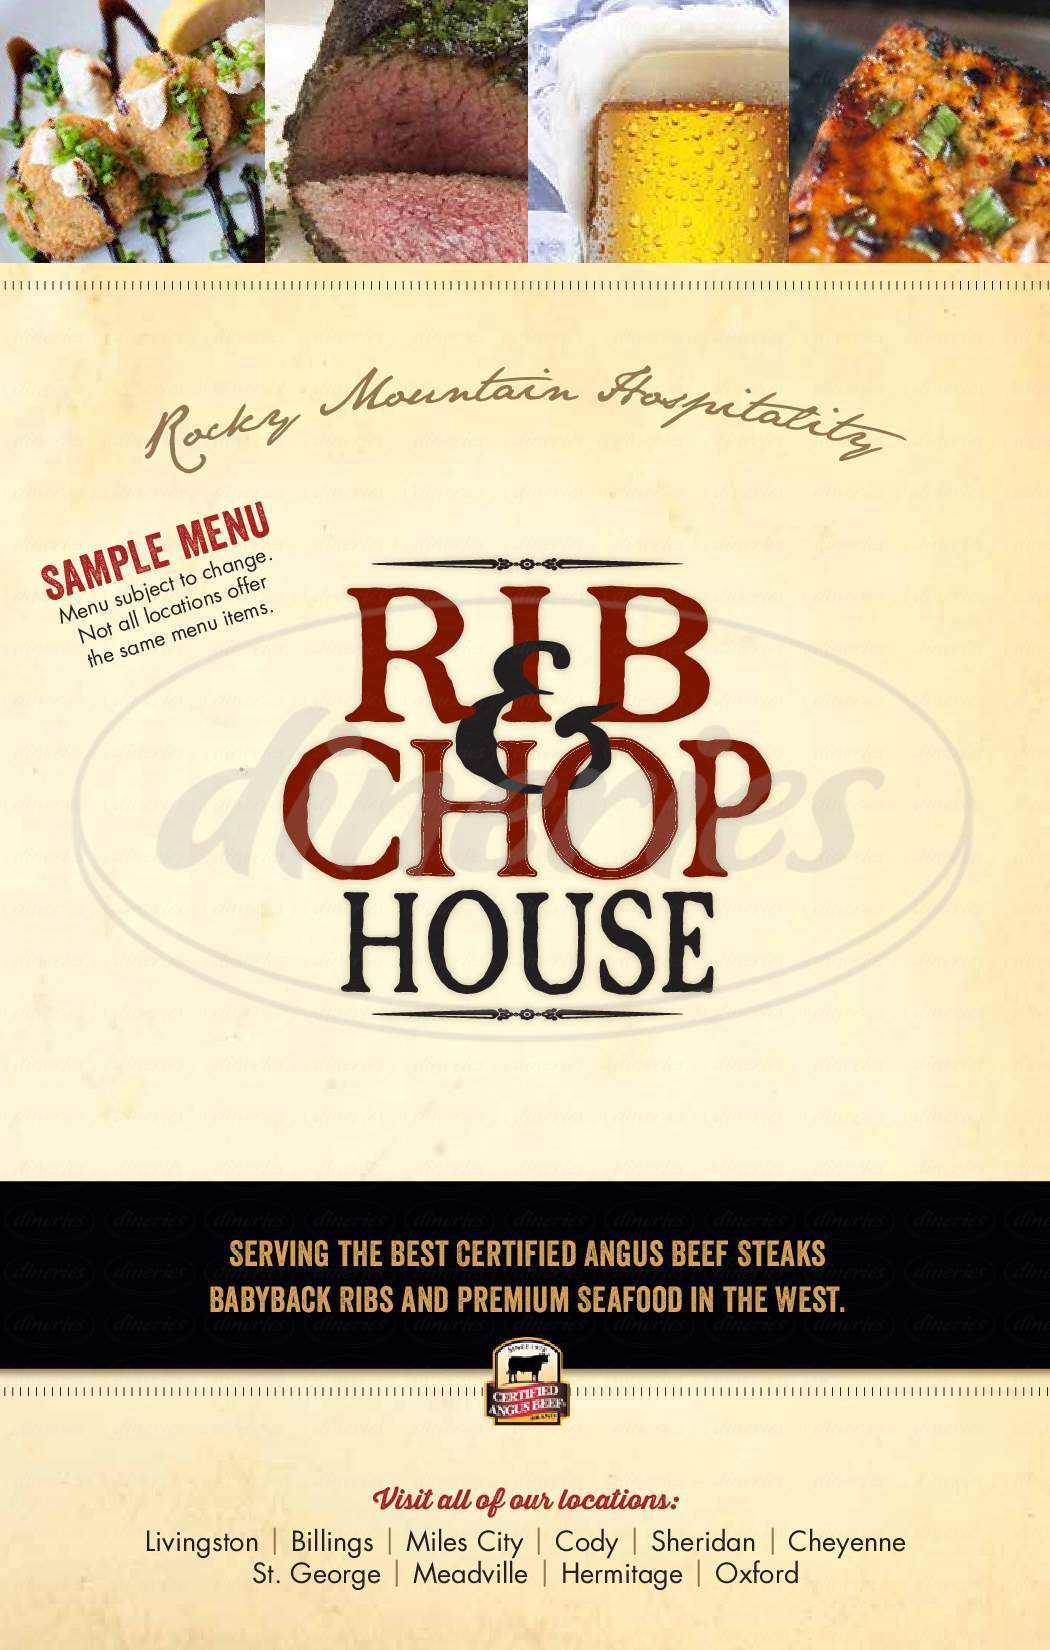 menu for Montana's Rib & Chop House